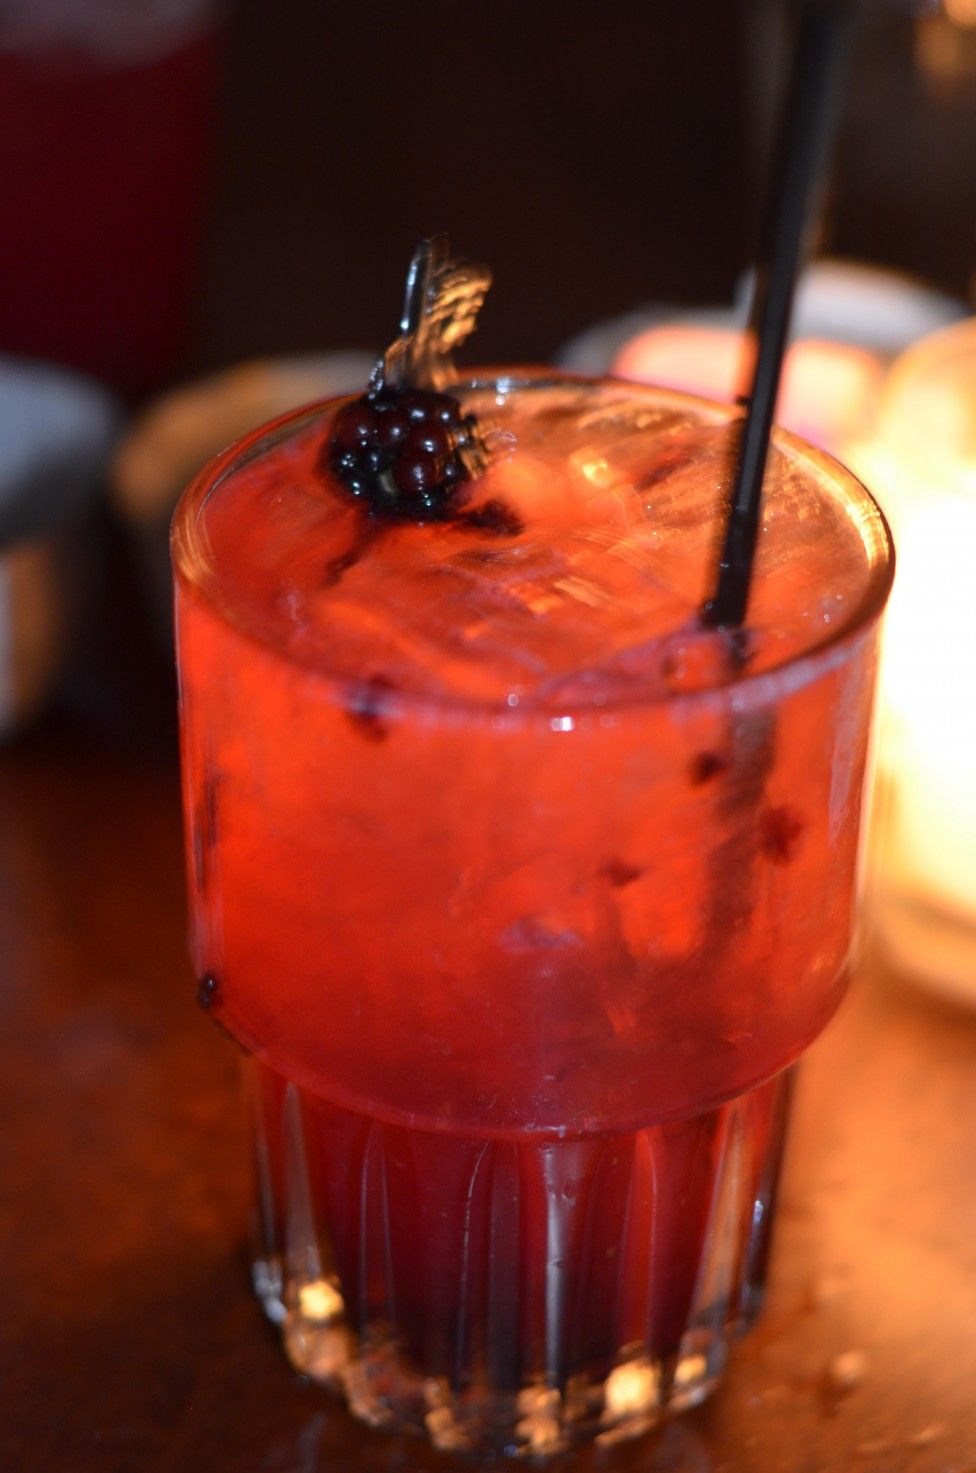 My friend ordered the No. 11 - gin, blackberry and lemon. It looked very refreshing. Isn't that fresh blackberry beautiful?